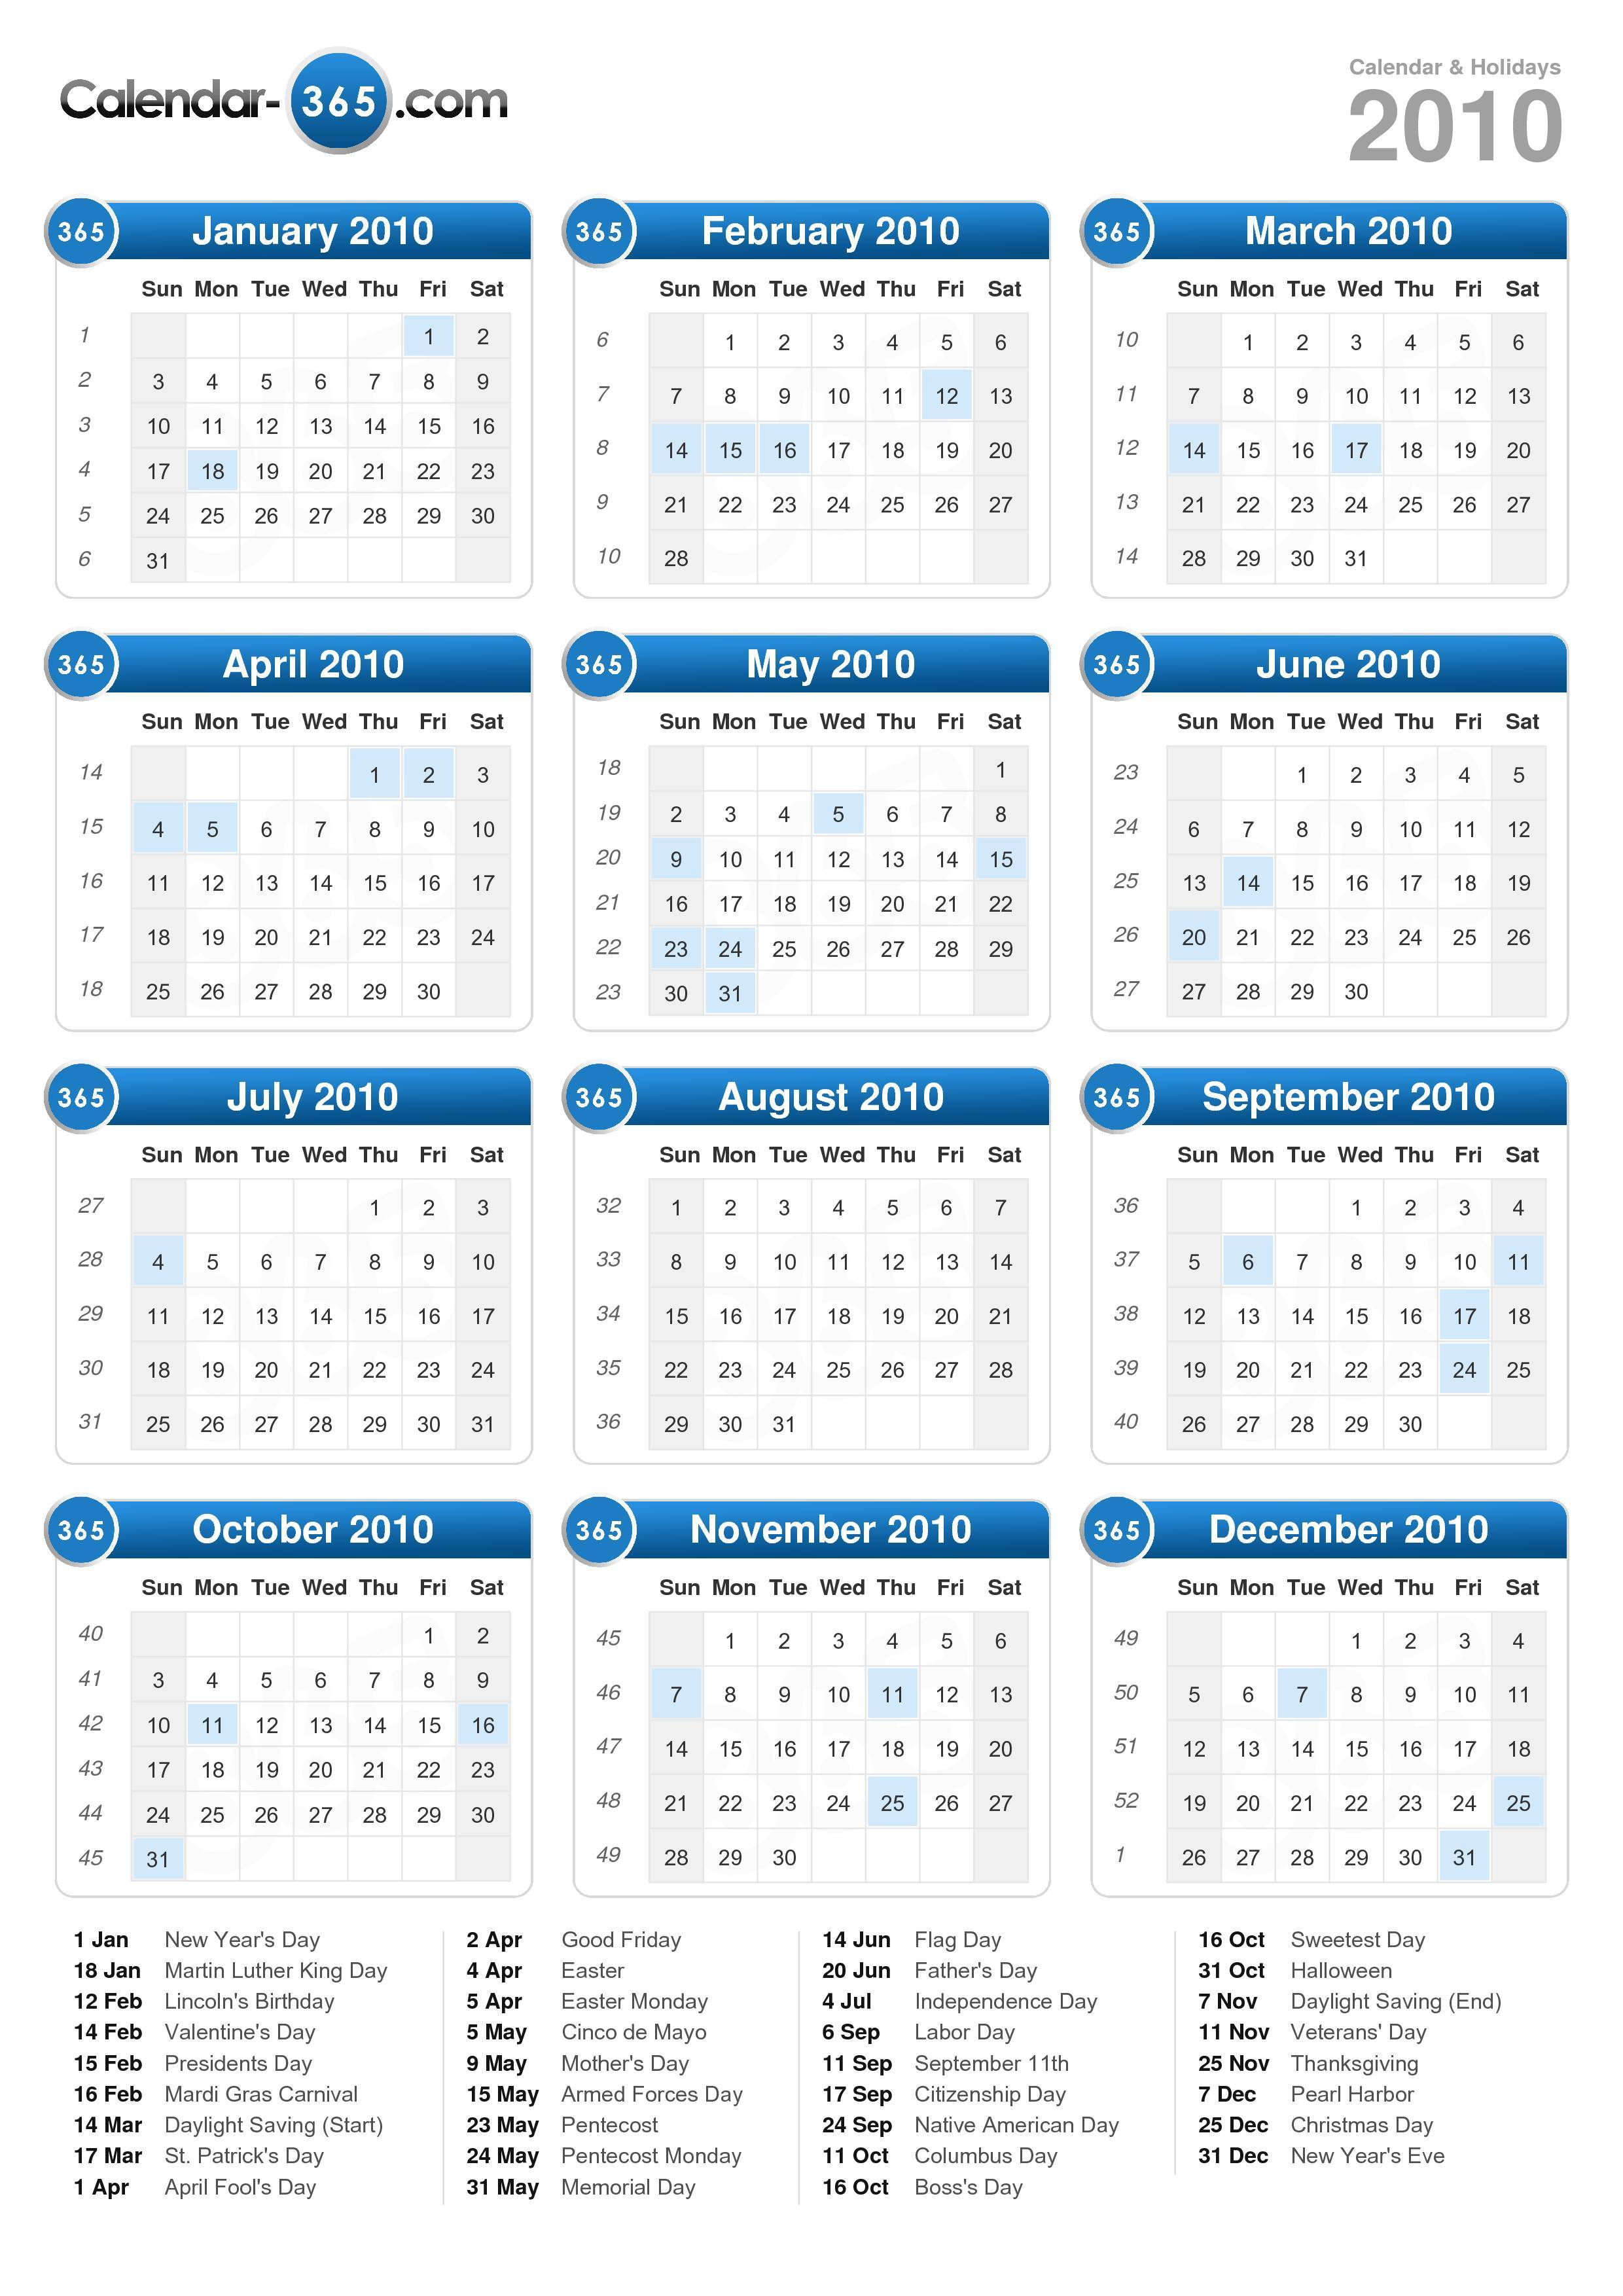 Download the 2010 Calendar with holidays . (Portrait format - 1 Page)